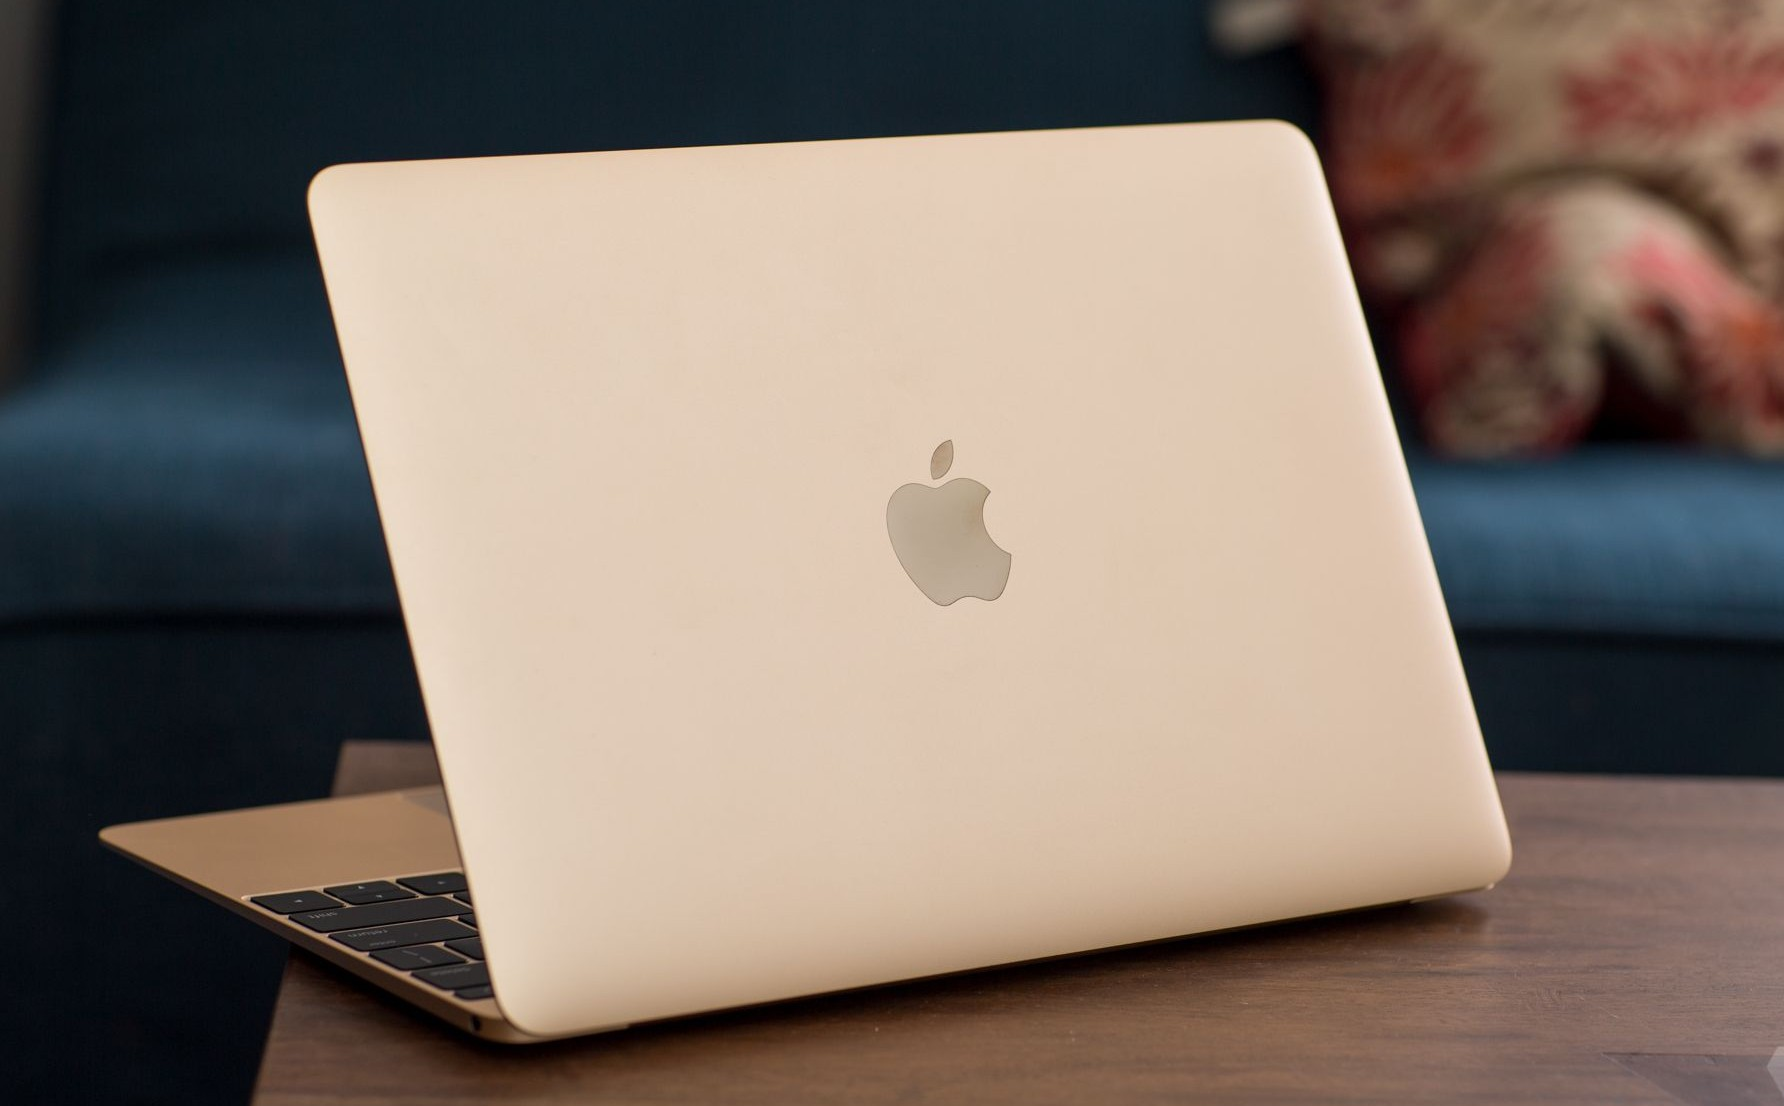 new-apple-macbook-2015-_-_22.0-e1428673357920